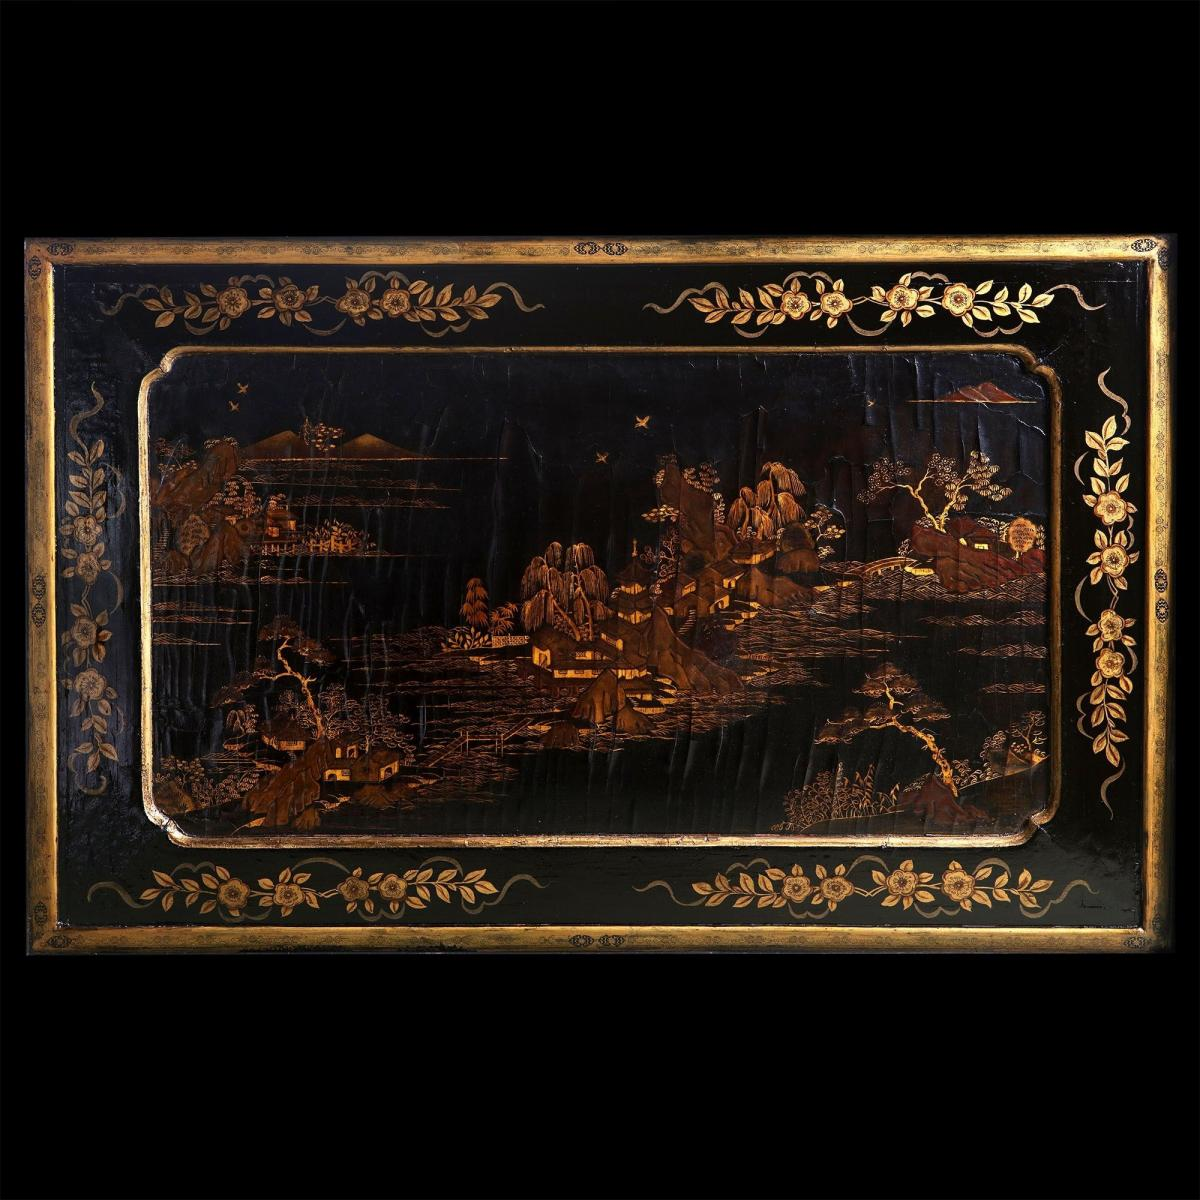 A low table with a 19th century Chinese lacquer panel